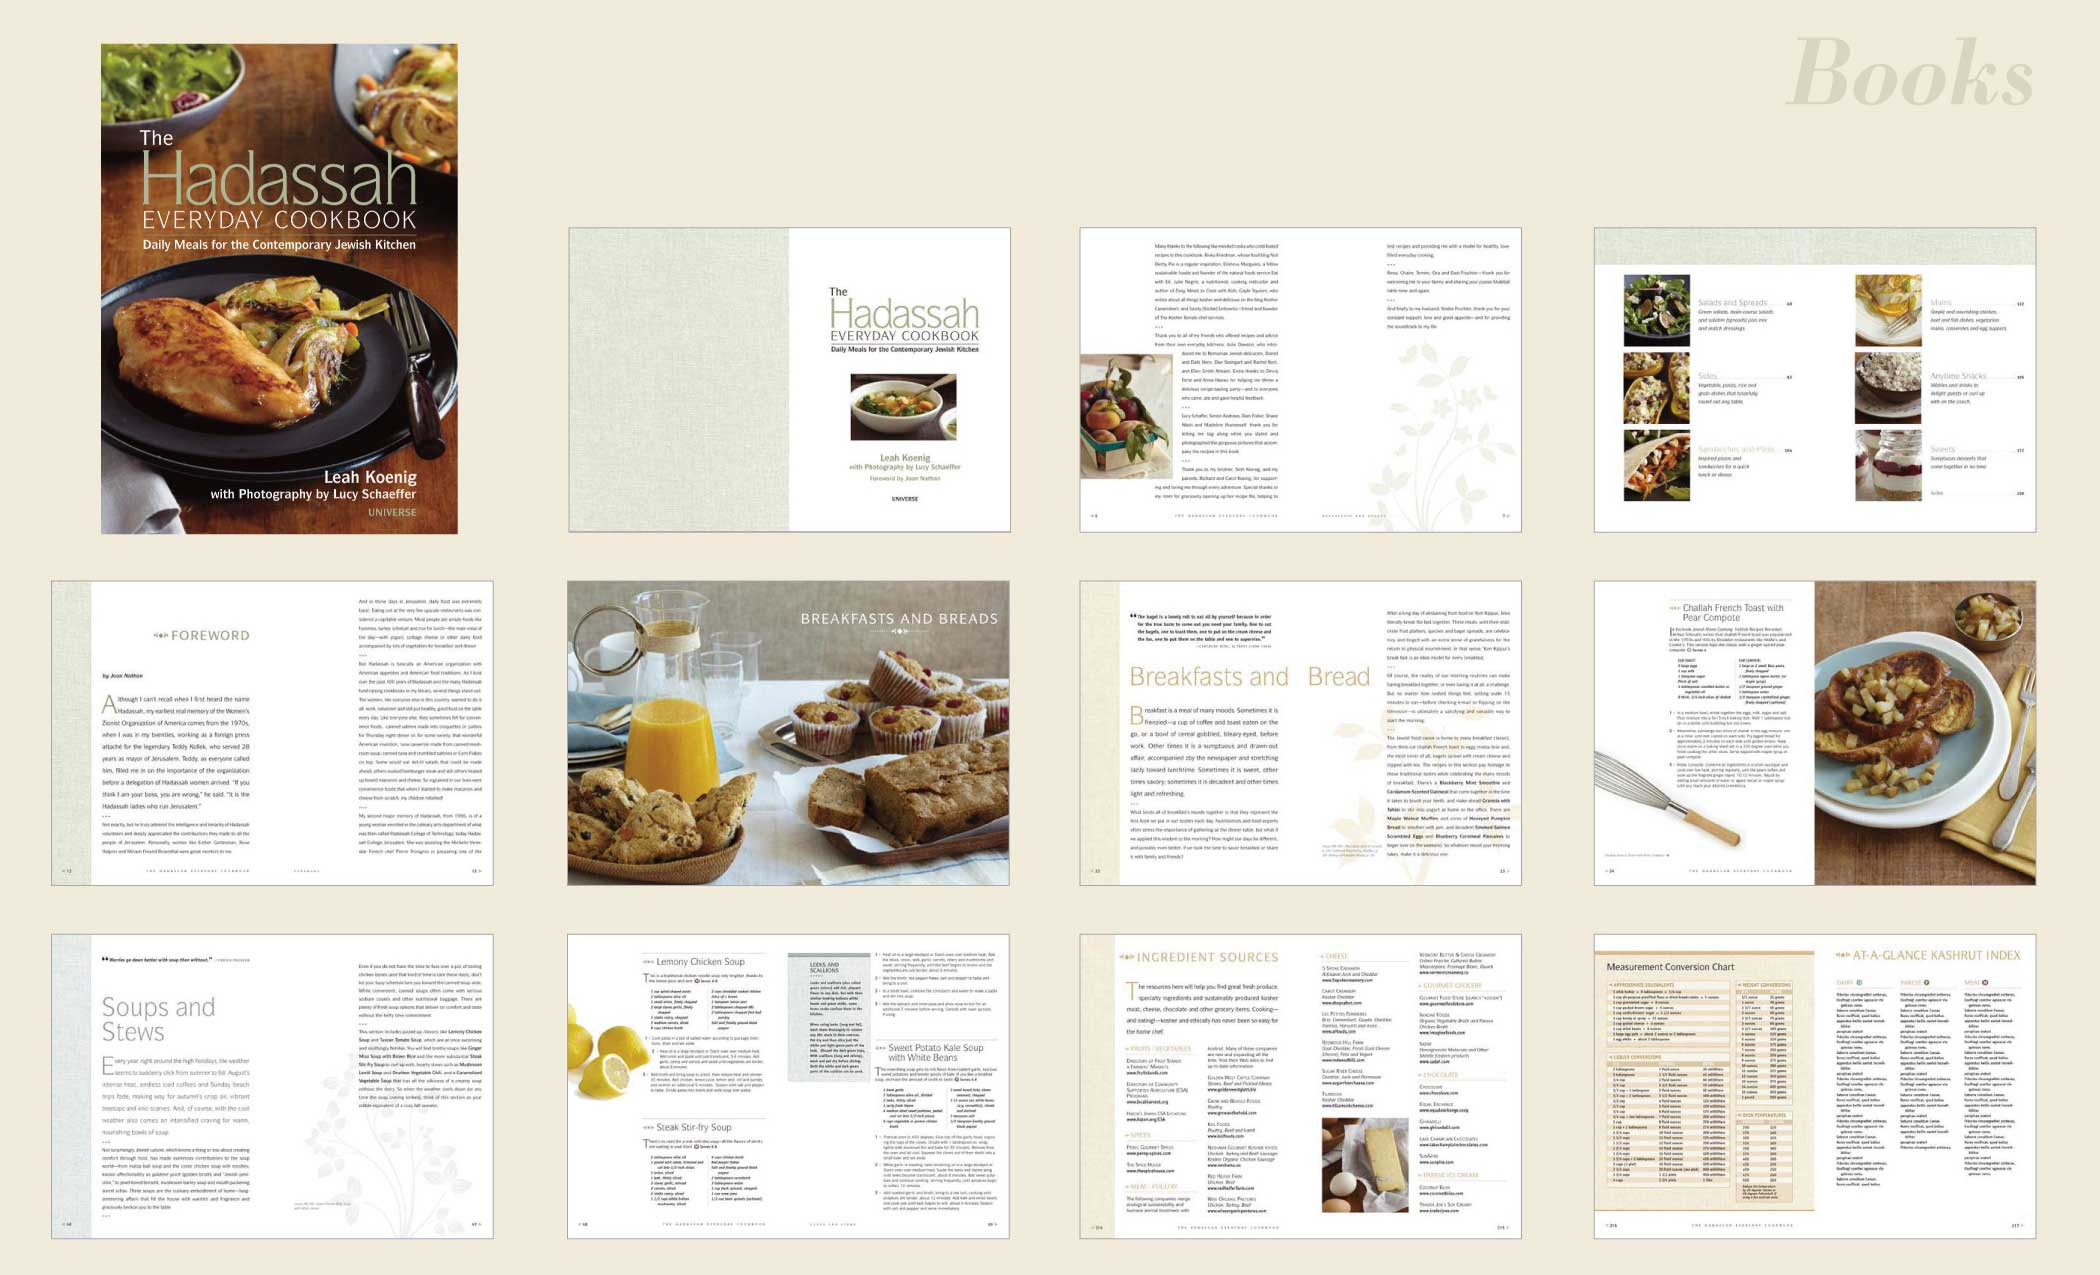 Book interior design lori s malkin design for Interior design and decoration textbook